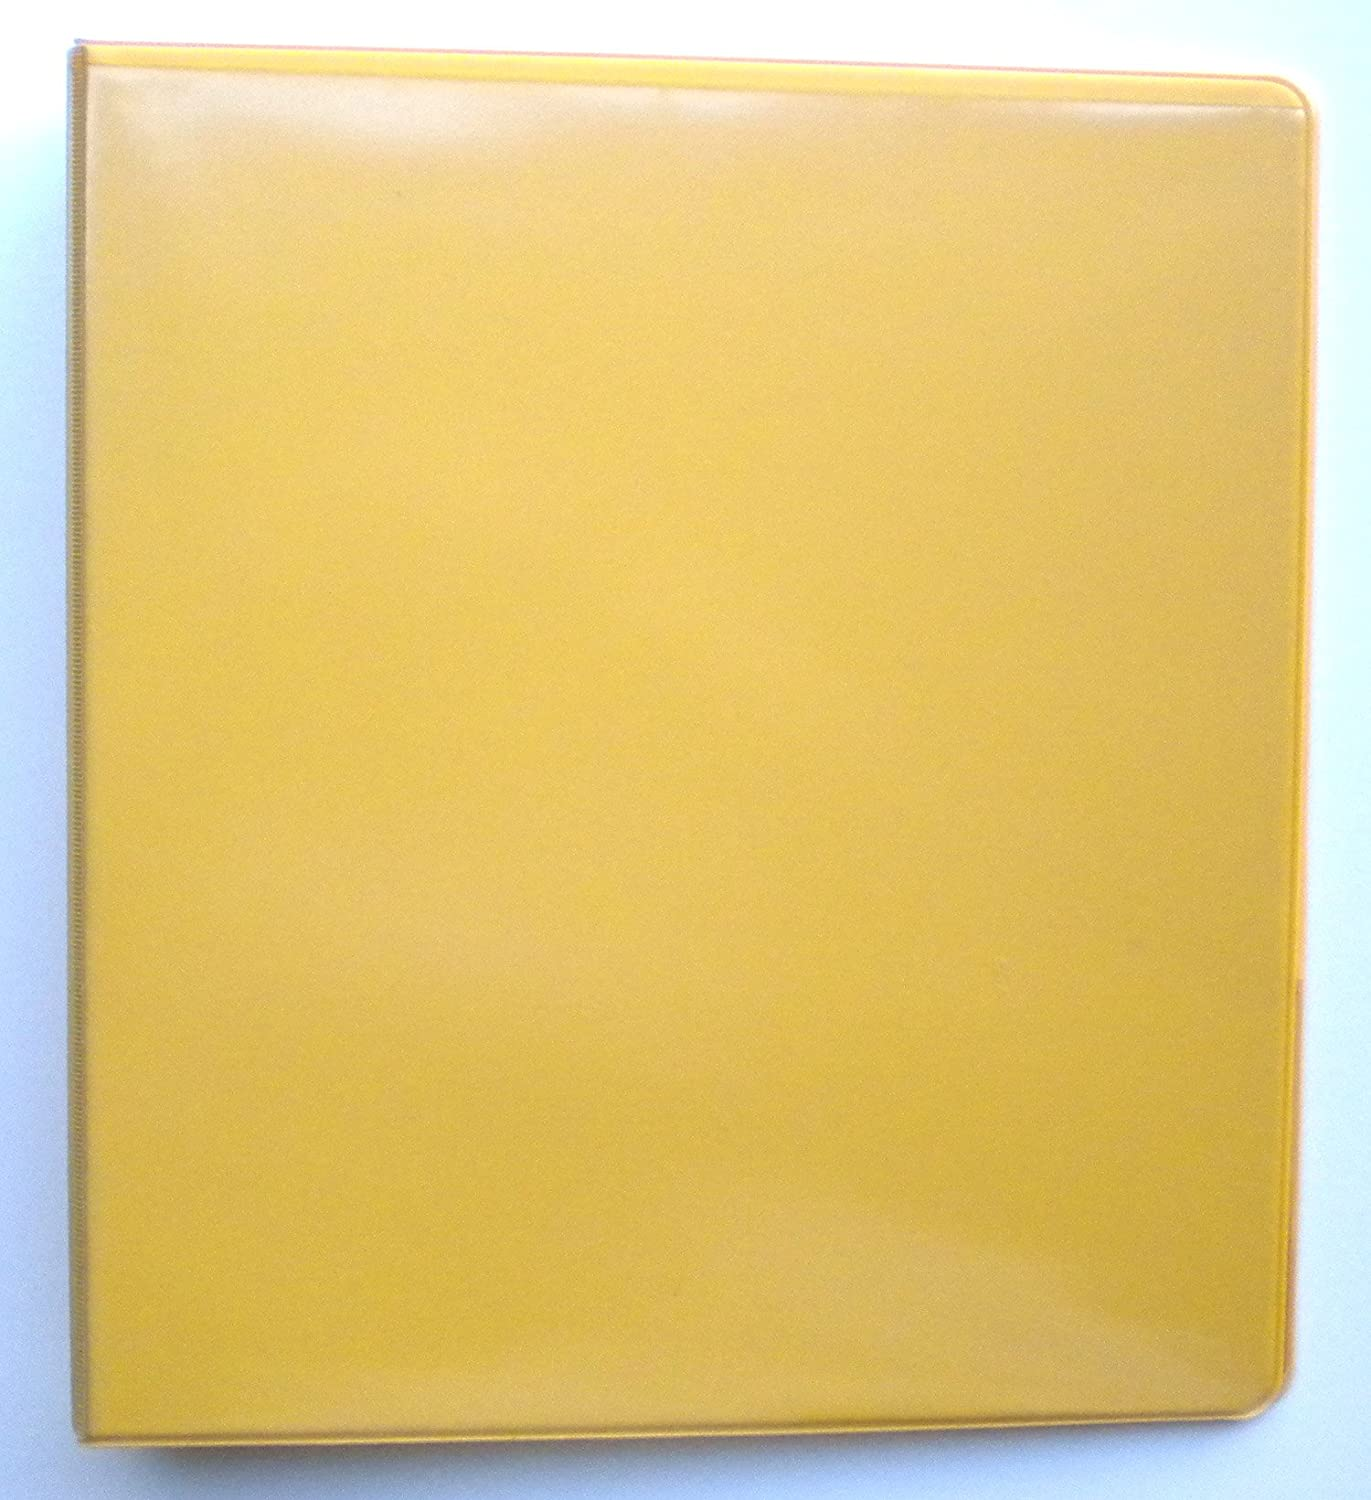 Manufacturer regenerated product Yellow 3 Store Ring 1.5